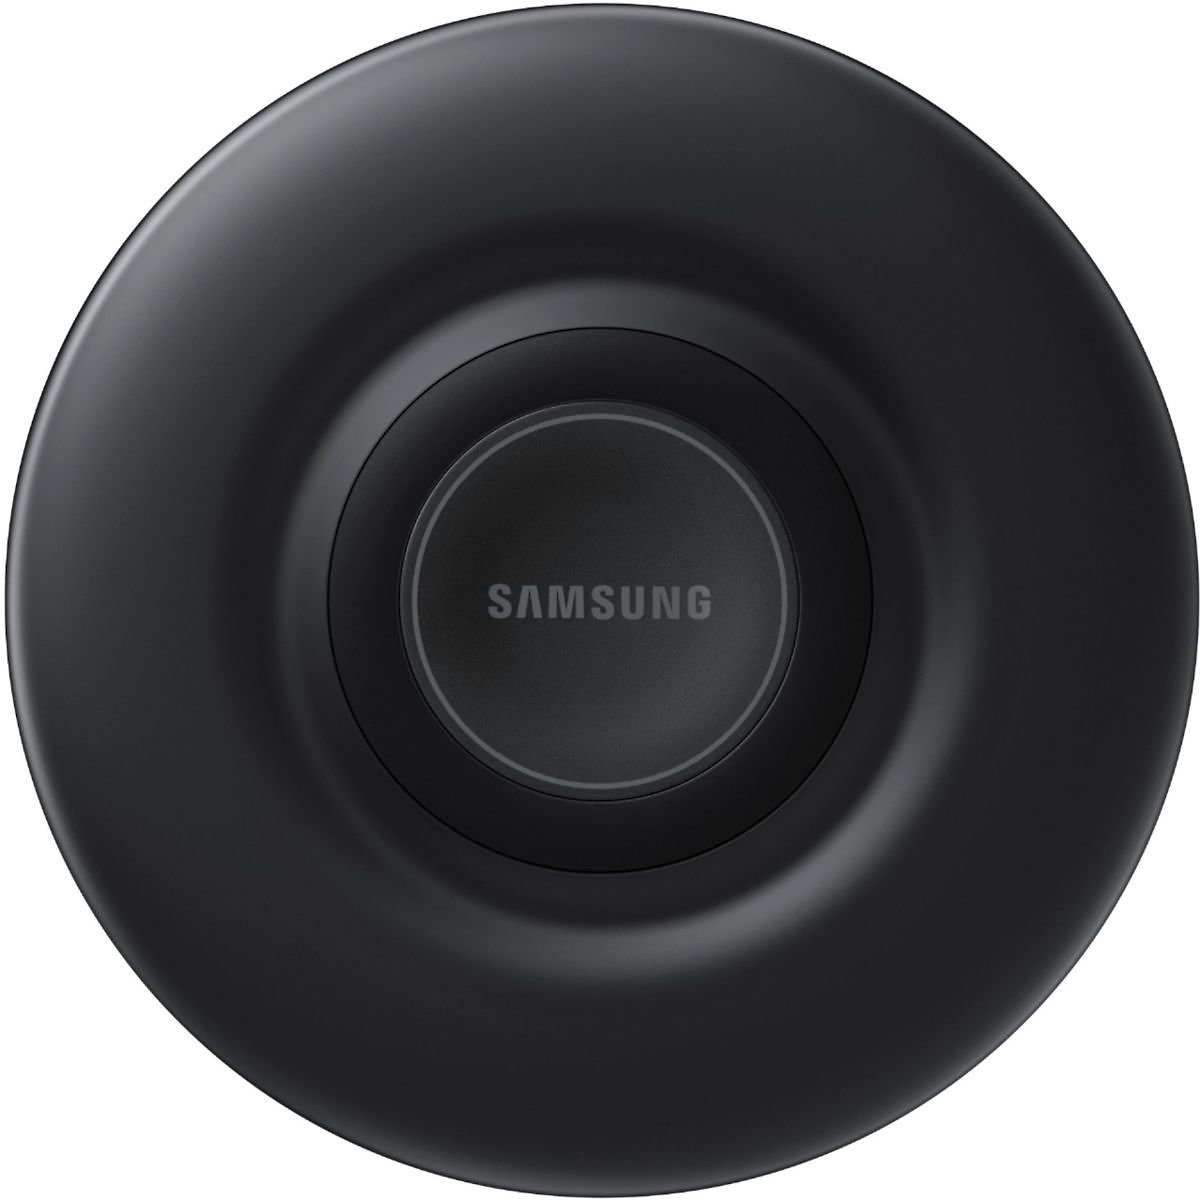 Samsung 9W Qi Certified Fast Charge Wireless Charging Pad for Android Black EP-P3105TBEGUS